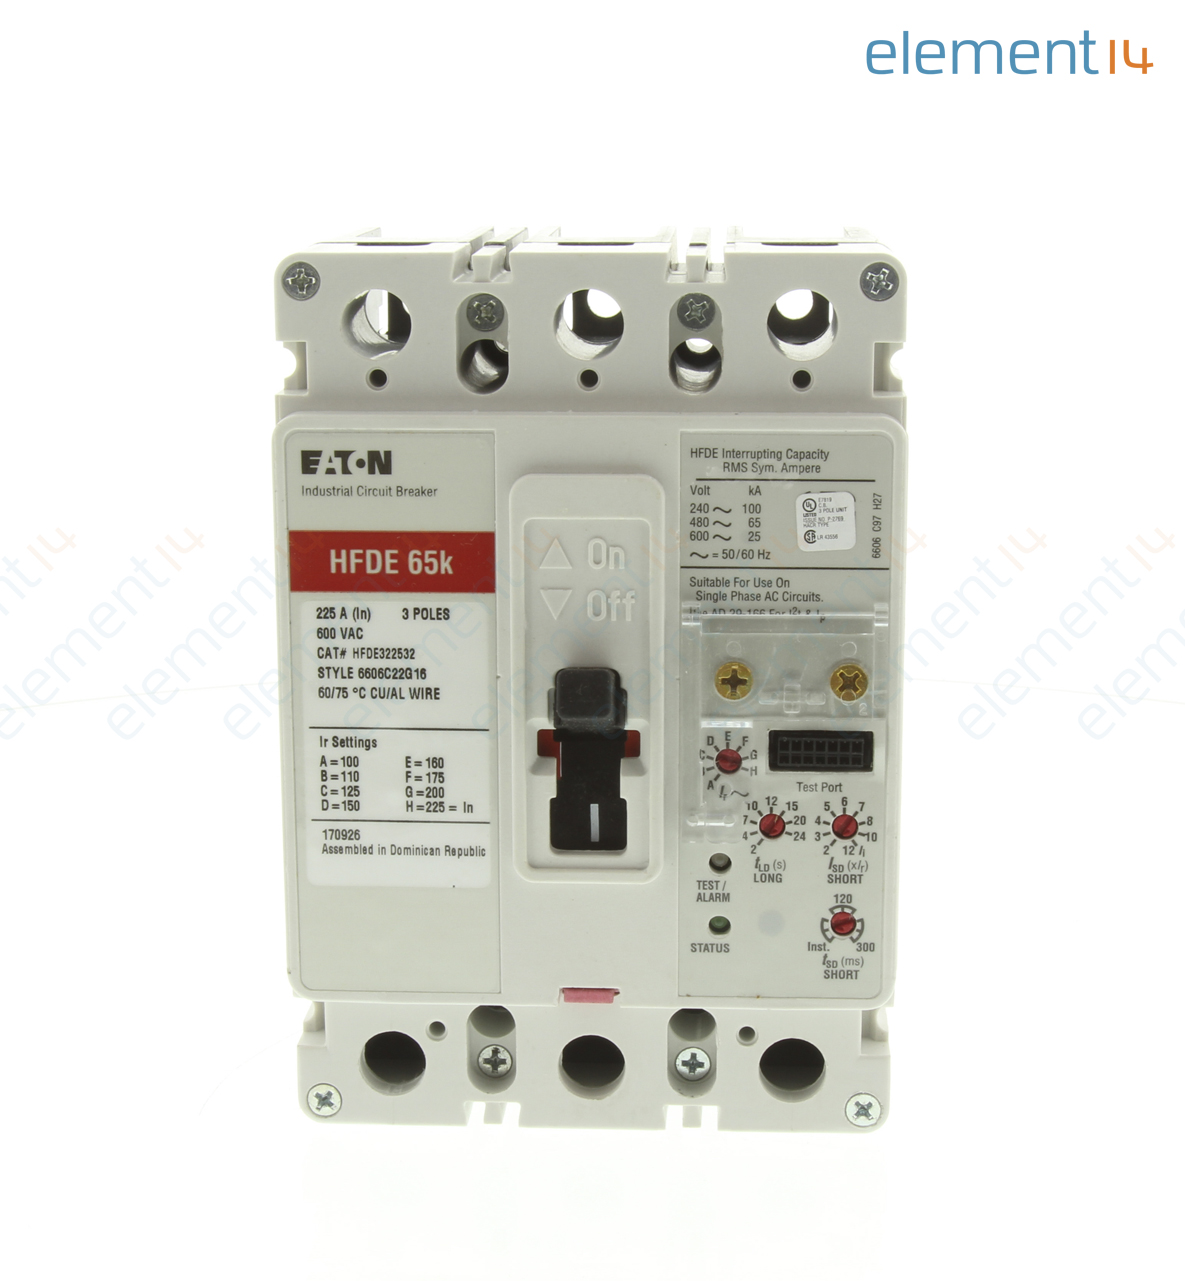 Hfde322532 Eaton Cutler Hammer Electronic Circuit Breaker Fd Adding A New Requires Another Frame Type Hfde C Series 225 3 Pole 600 V Din Rail Panel